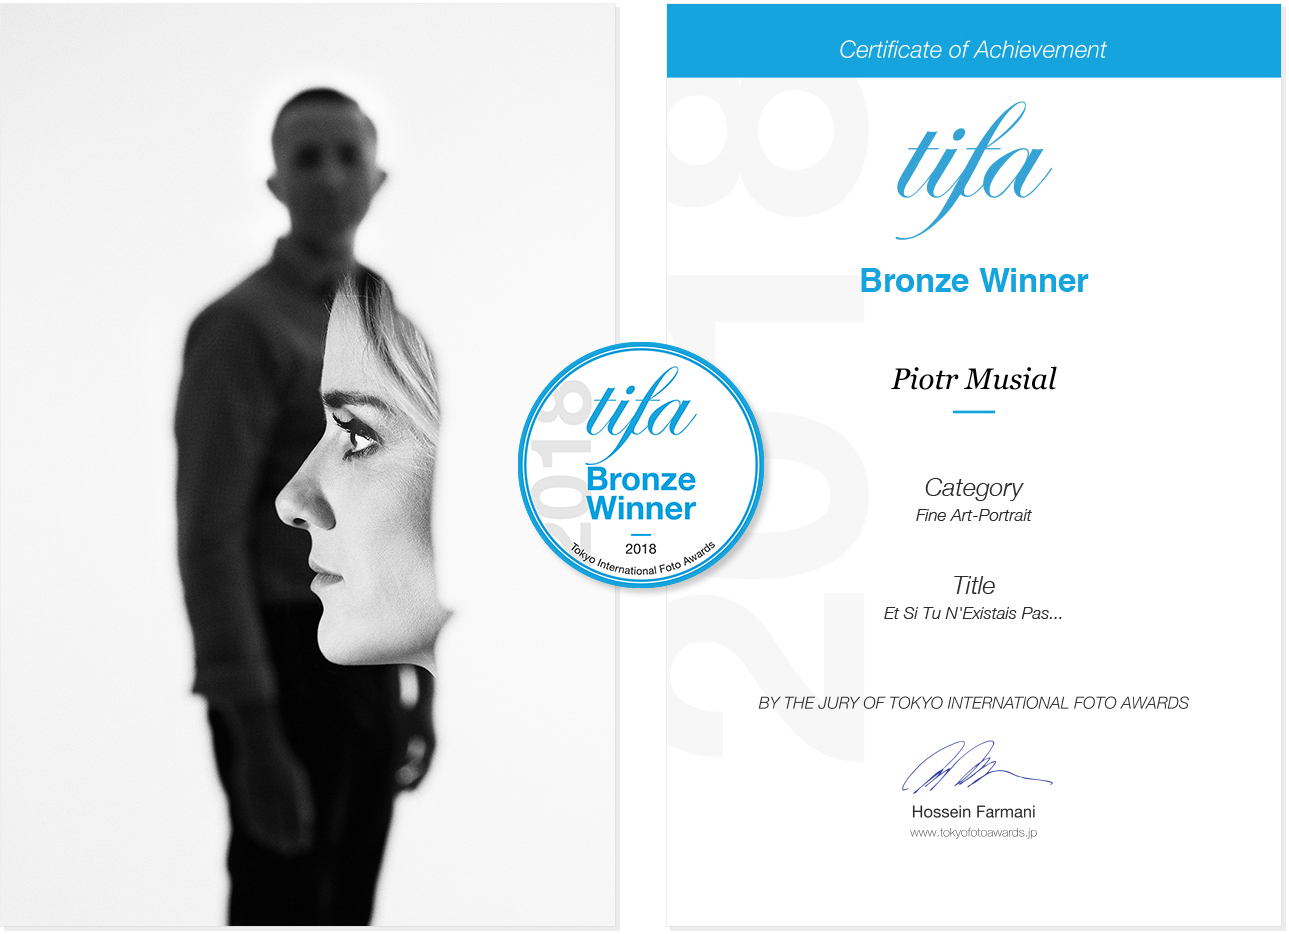 2018 - Tokyo International Foto Awards - 3rd Place (Bronze Winner) in FineArt-Portrait Category - OLA+LUKASZ by Piotr Musial